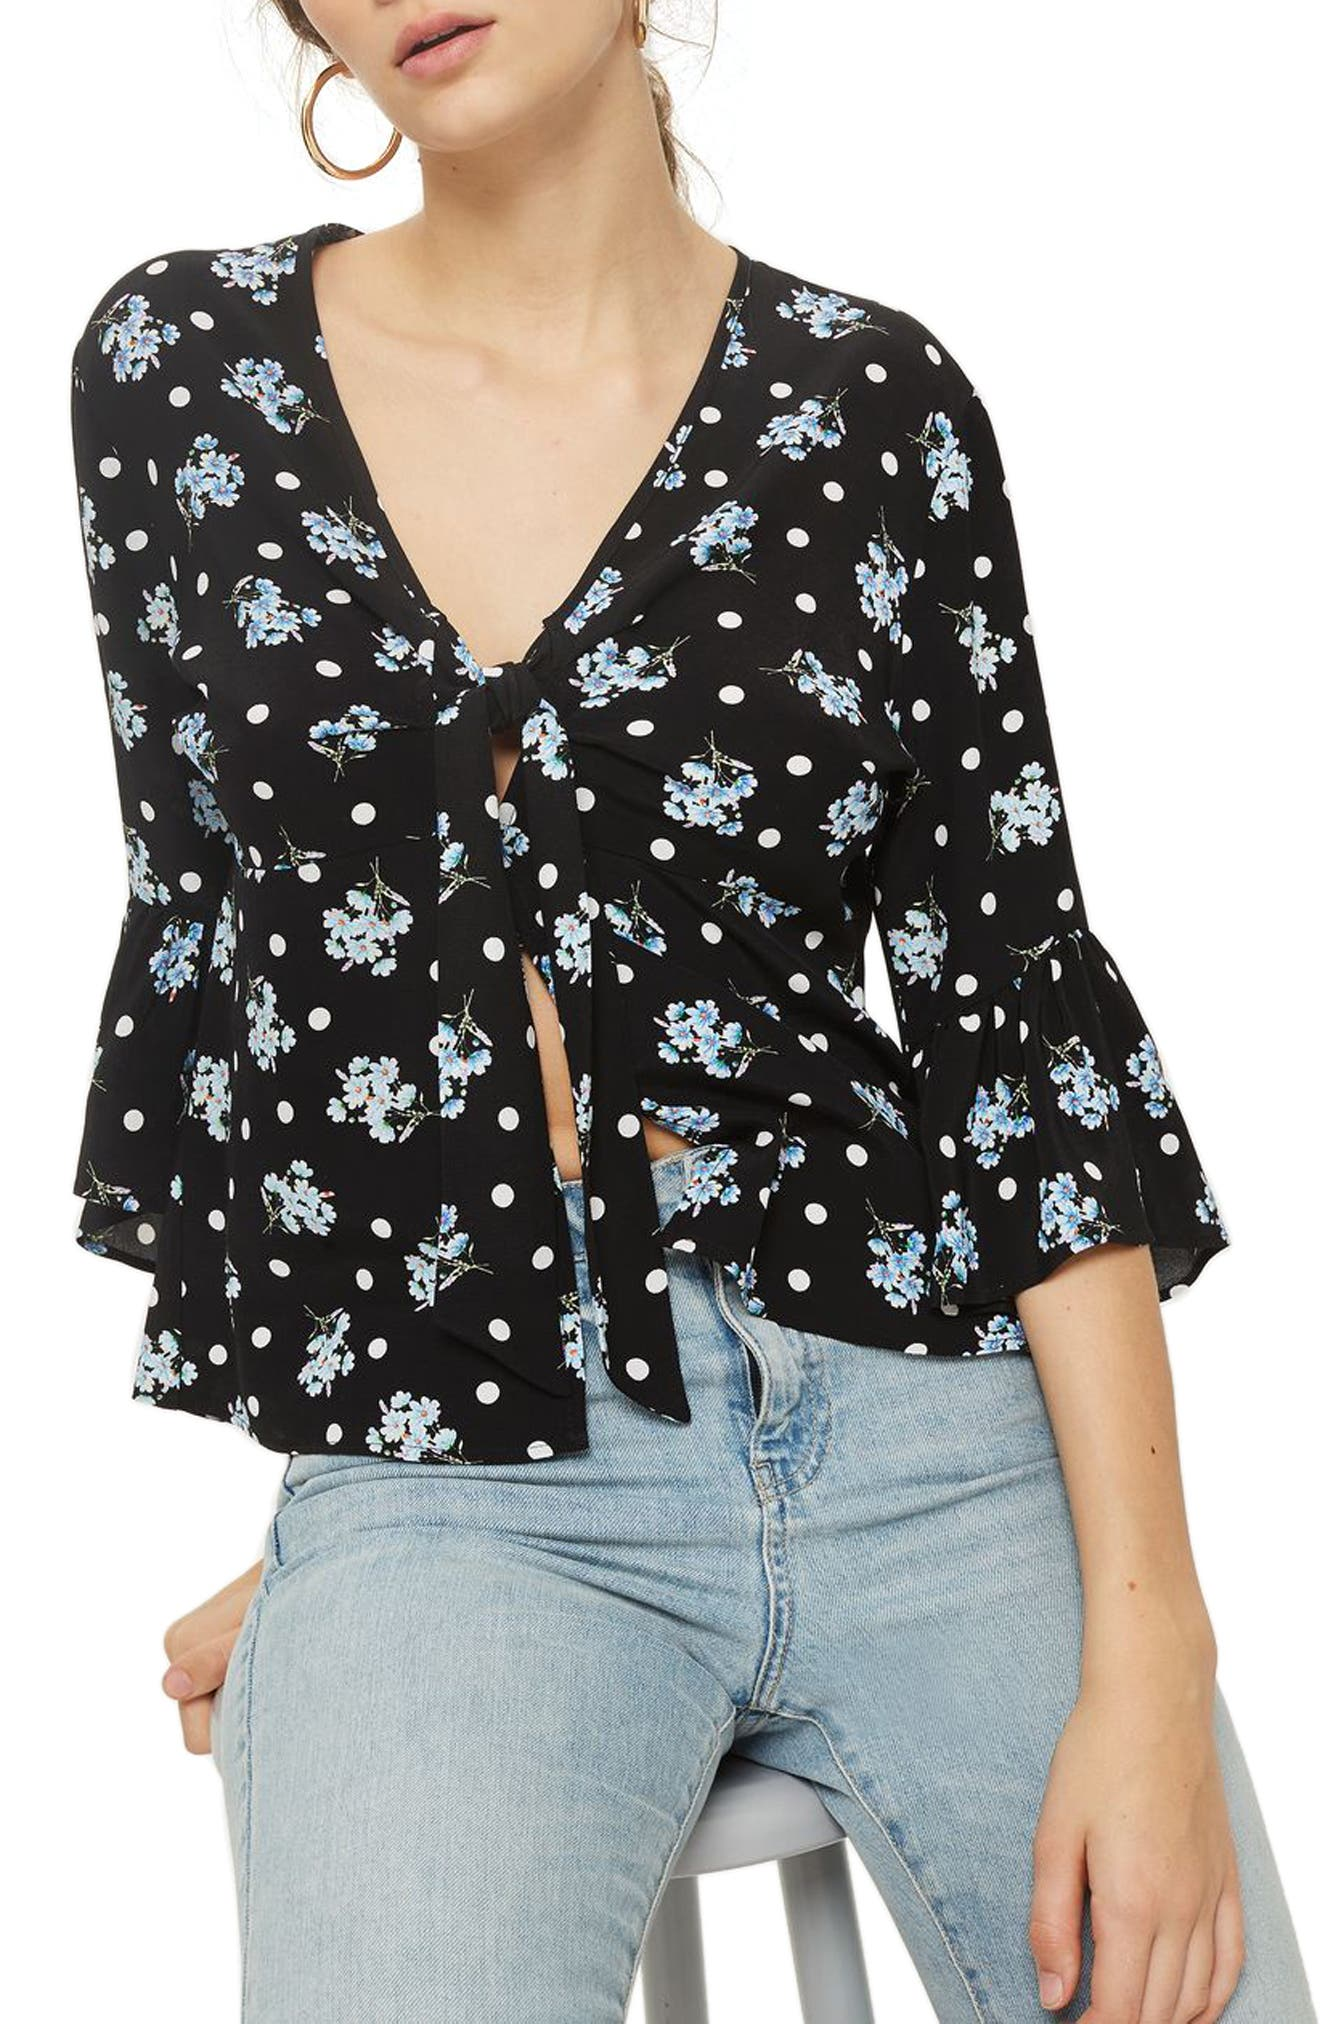 Alternate Image 1 Selected - Topshop Felicity Spot Floral Tie Front Blouse